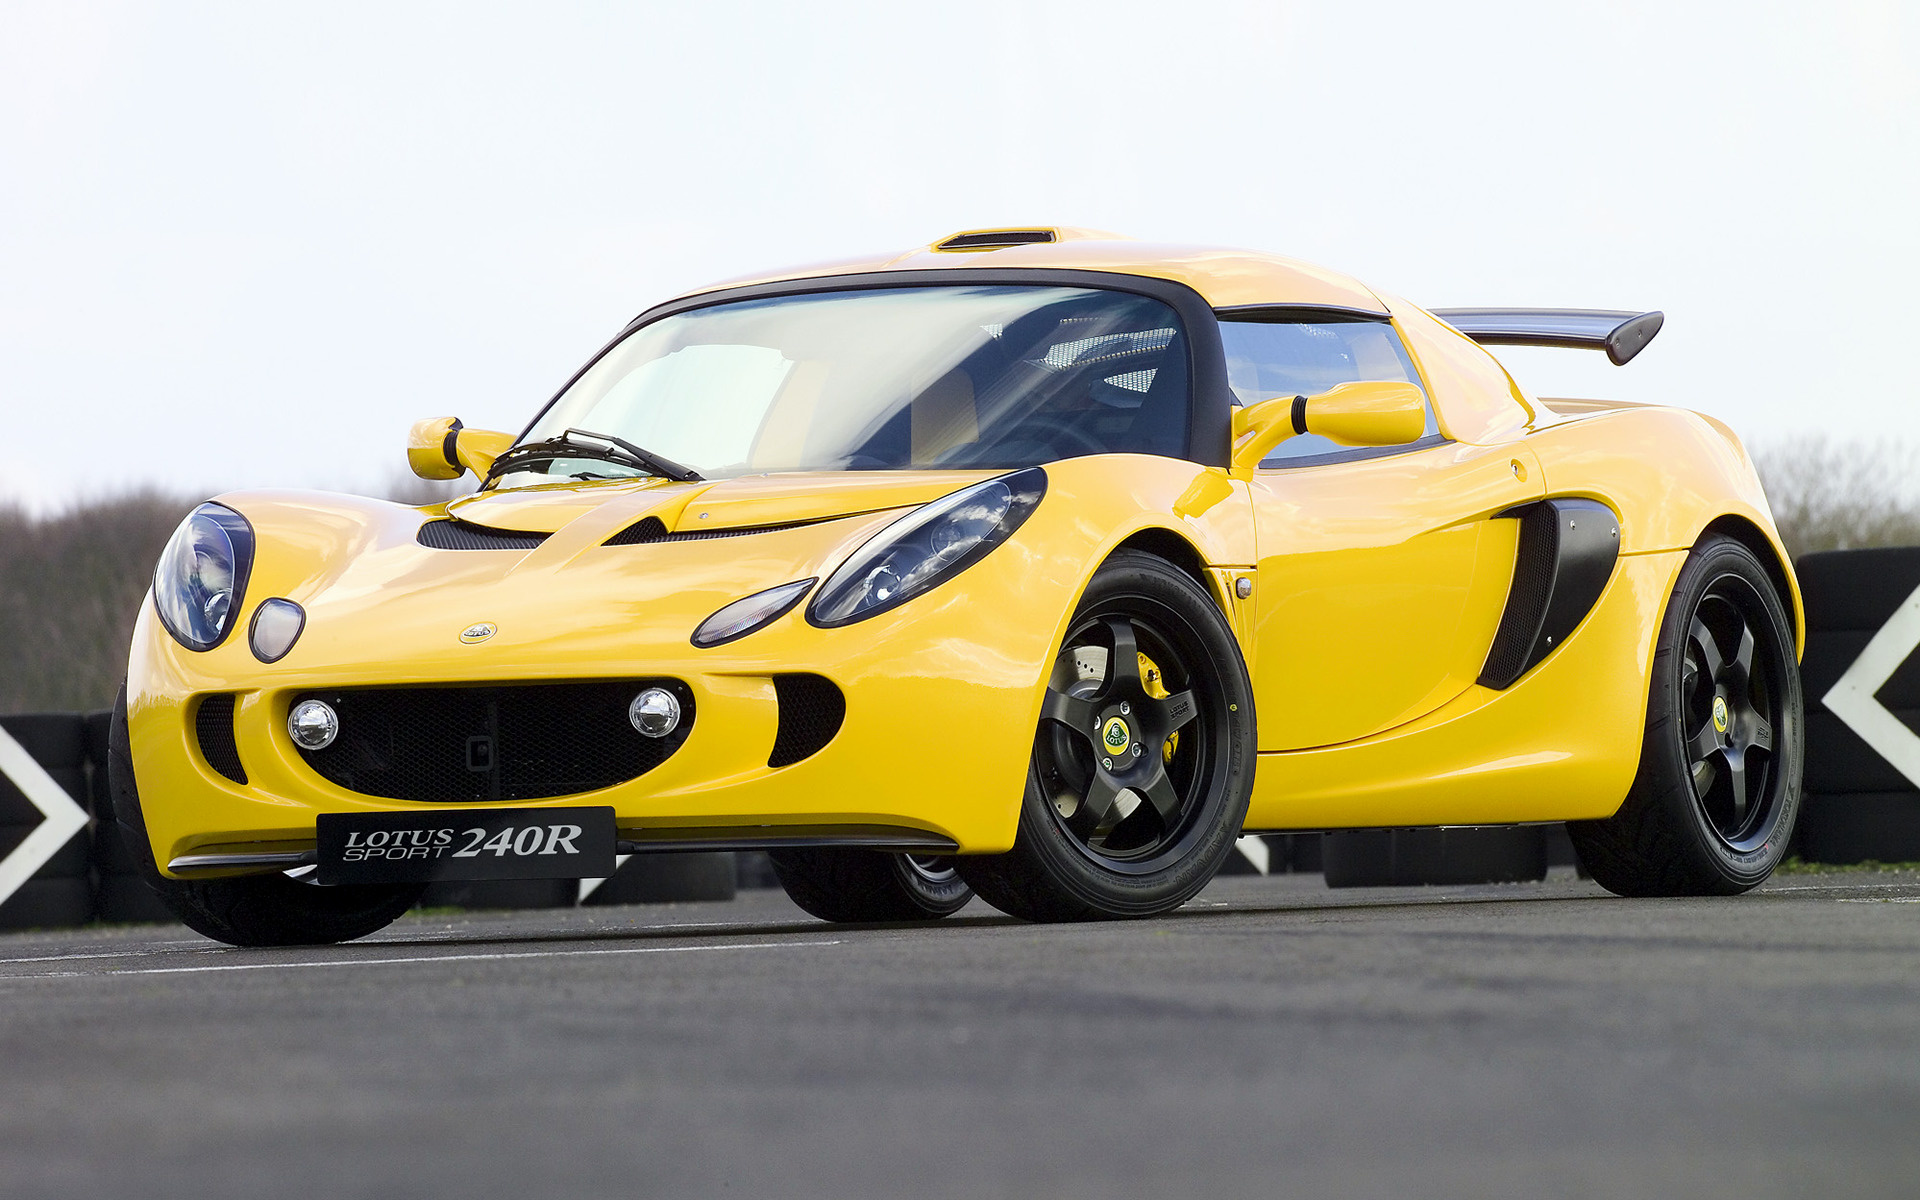 Lotus Sport Exige 240R (2005) Wallpapers and HD Images - Car Pixel